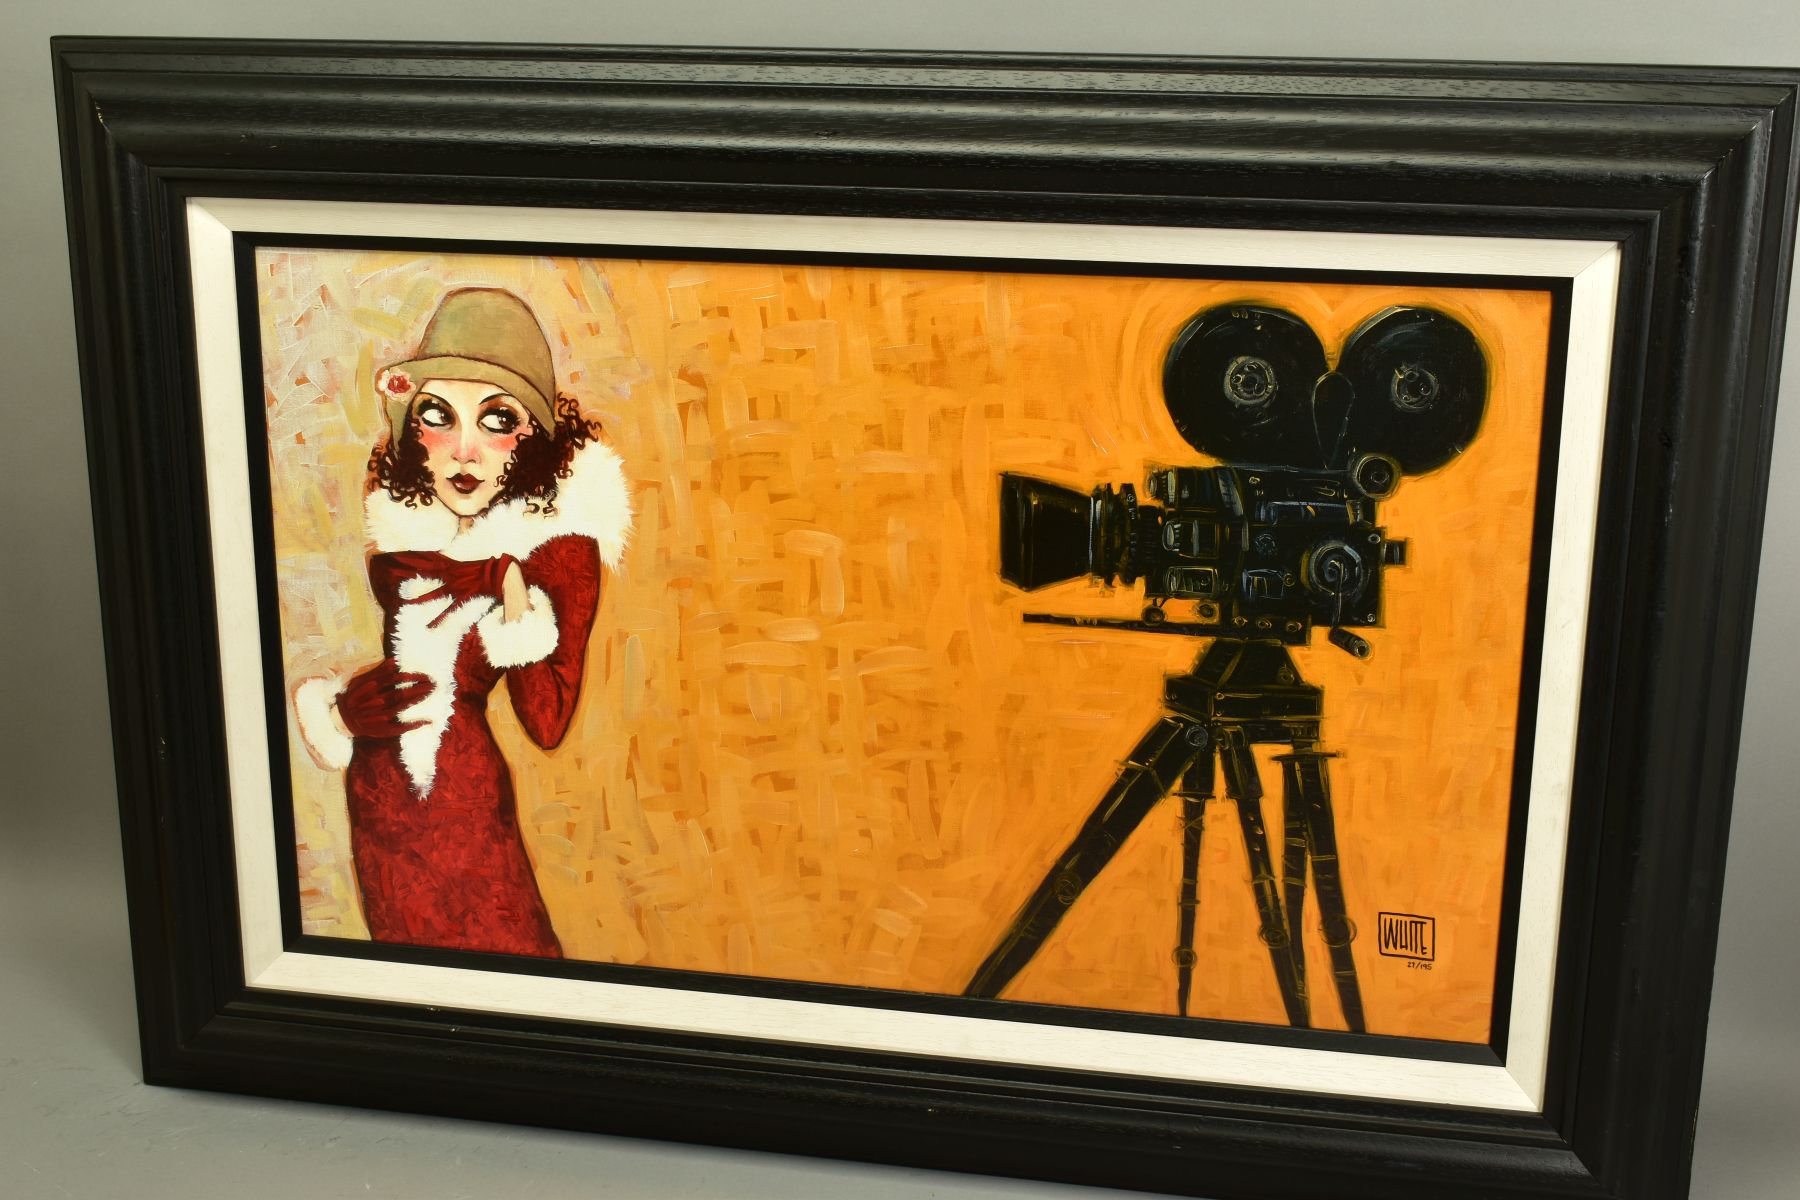 TODD WHITE (AMERICAN 1969), 'Her First Screen Test', a Limited Edition print of a female figure, - Image 4 of 9